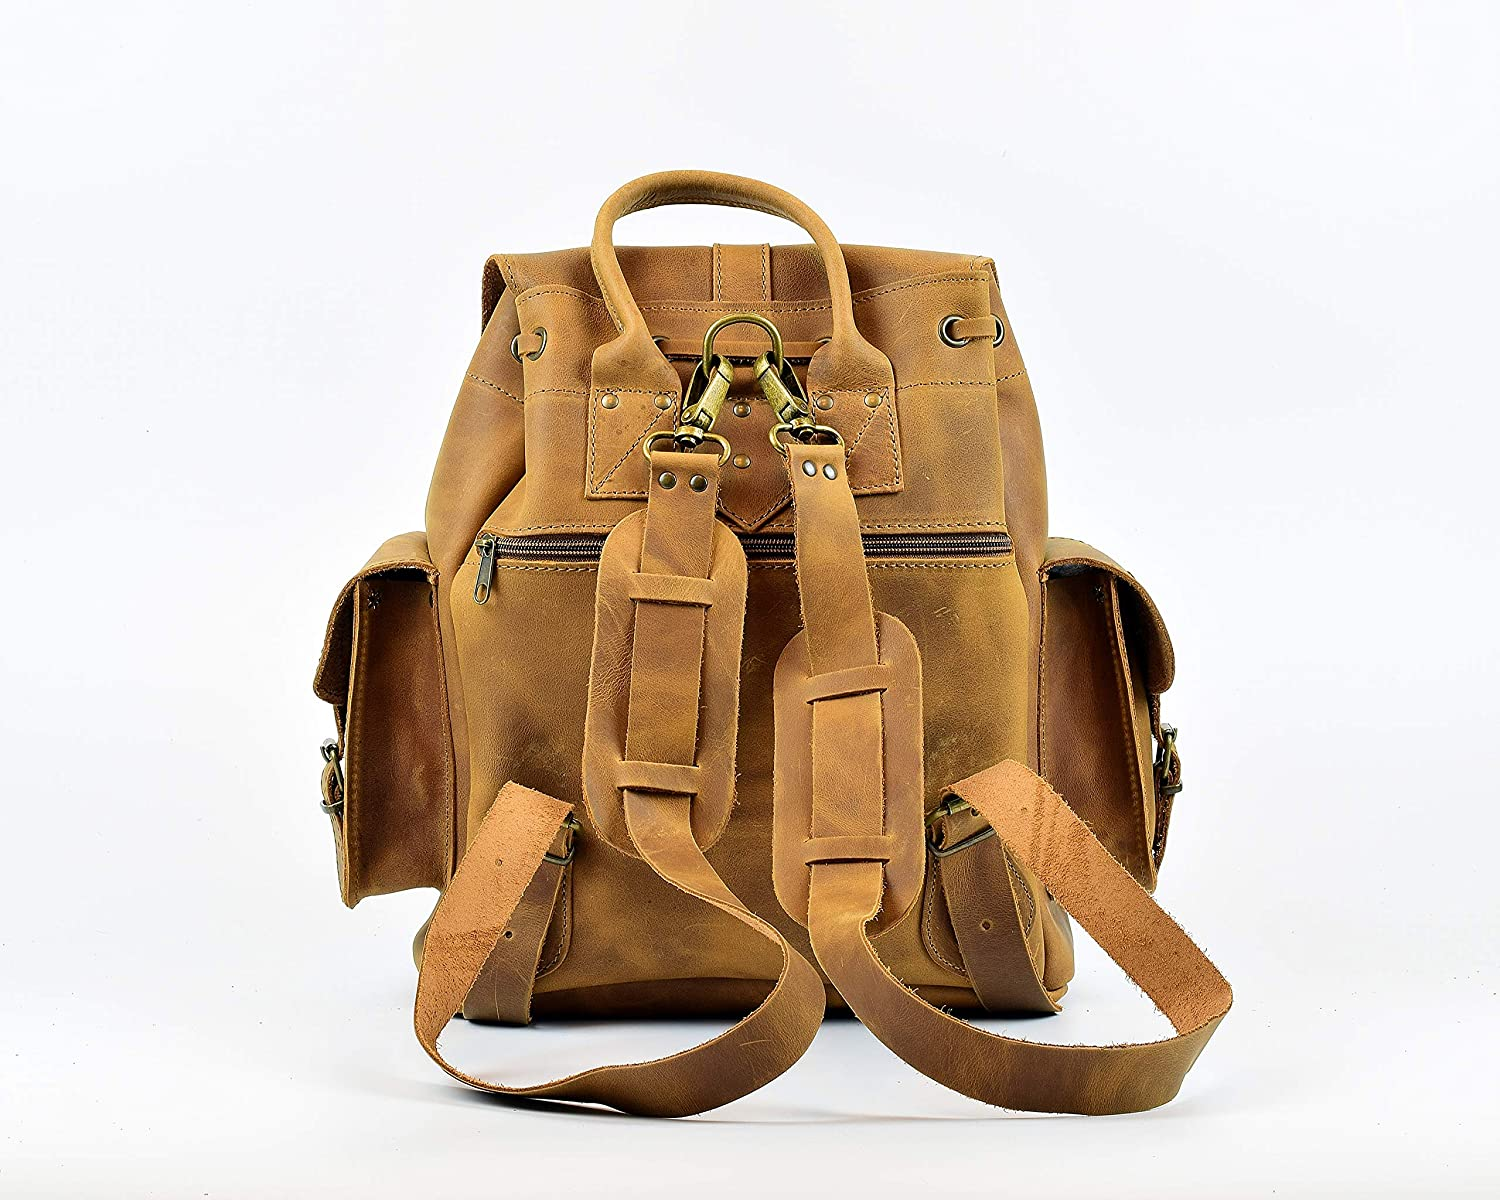 Handmade in Greece Black Suede Leather Backpack Small Colors: Tan Light Brown